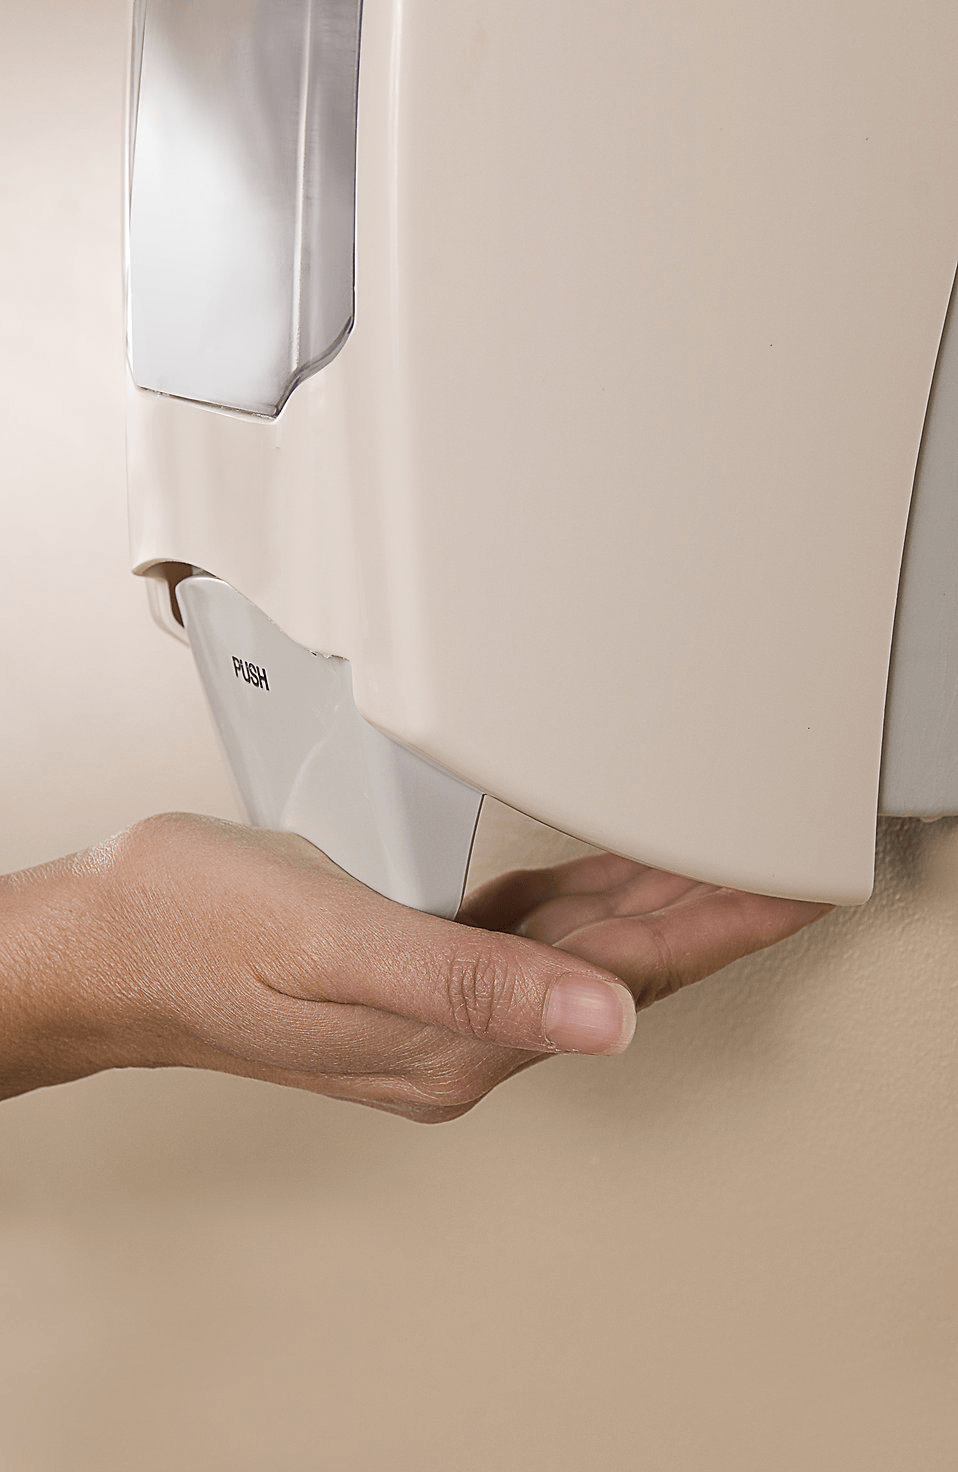 Selecting hand soap dispensers